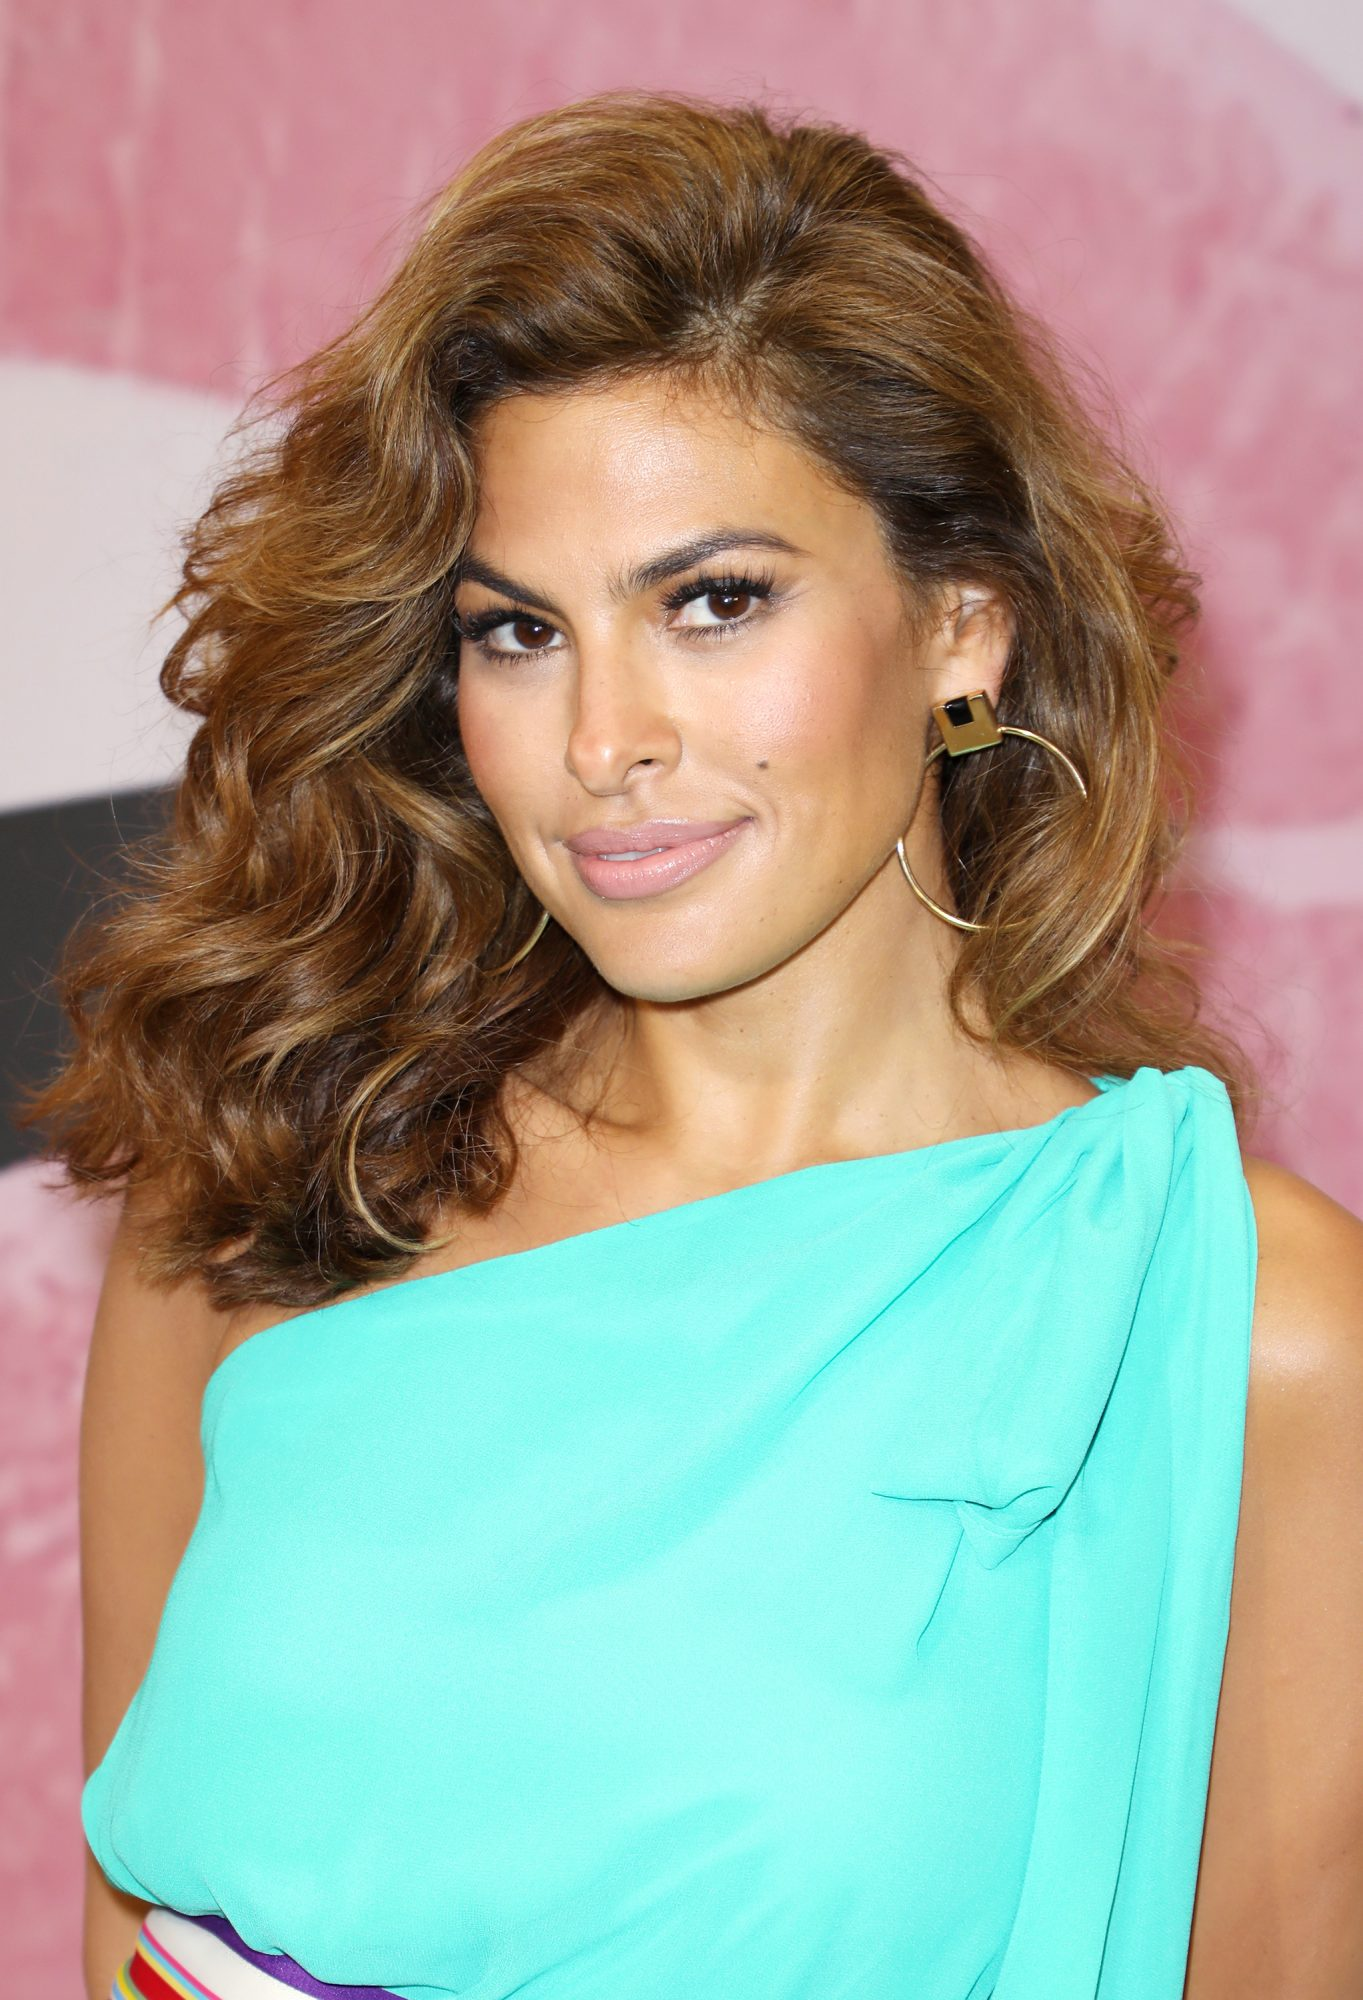 Eva Mendes's Rare Mother-Daughter Photo Will Warm Your Heart